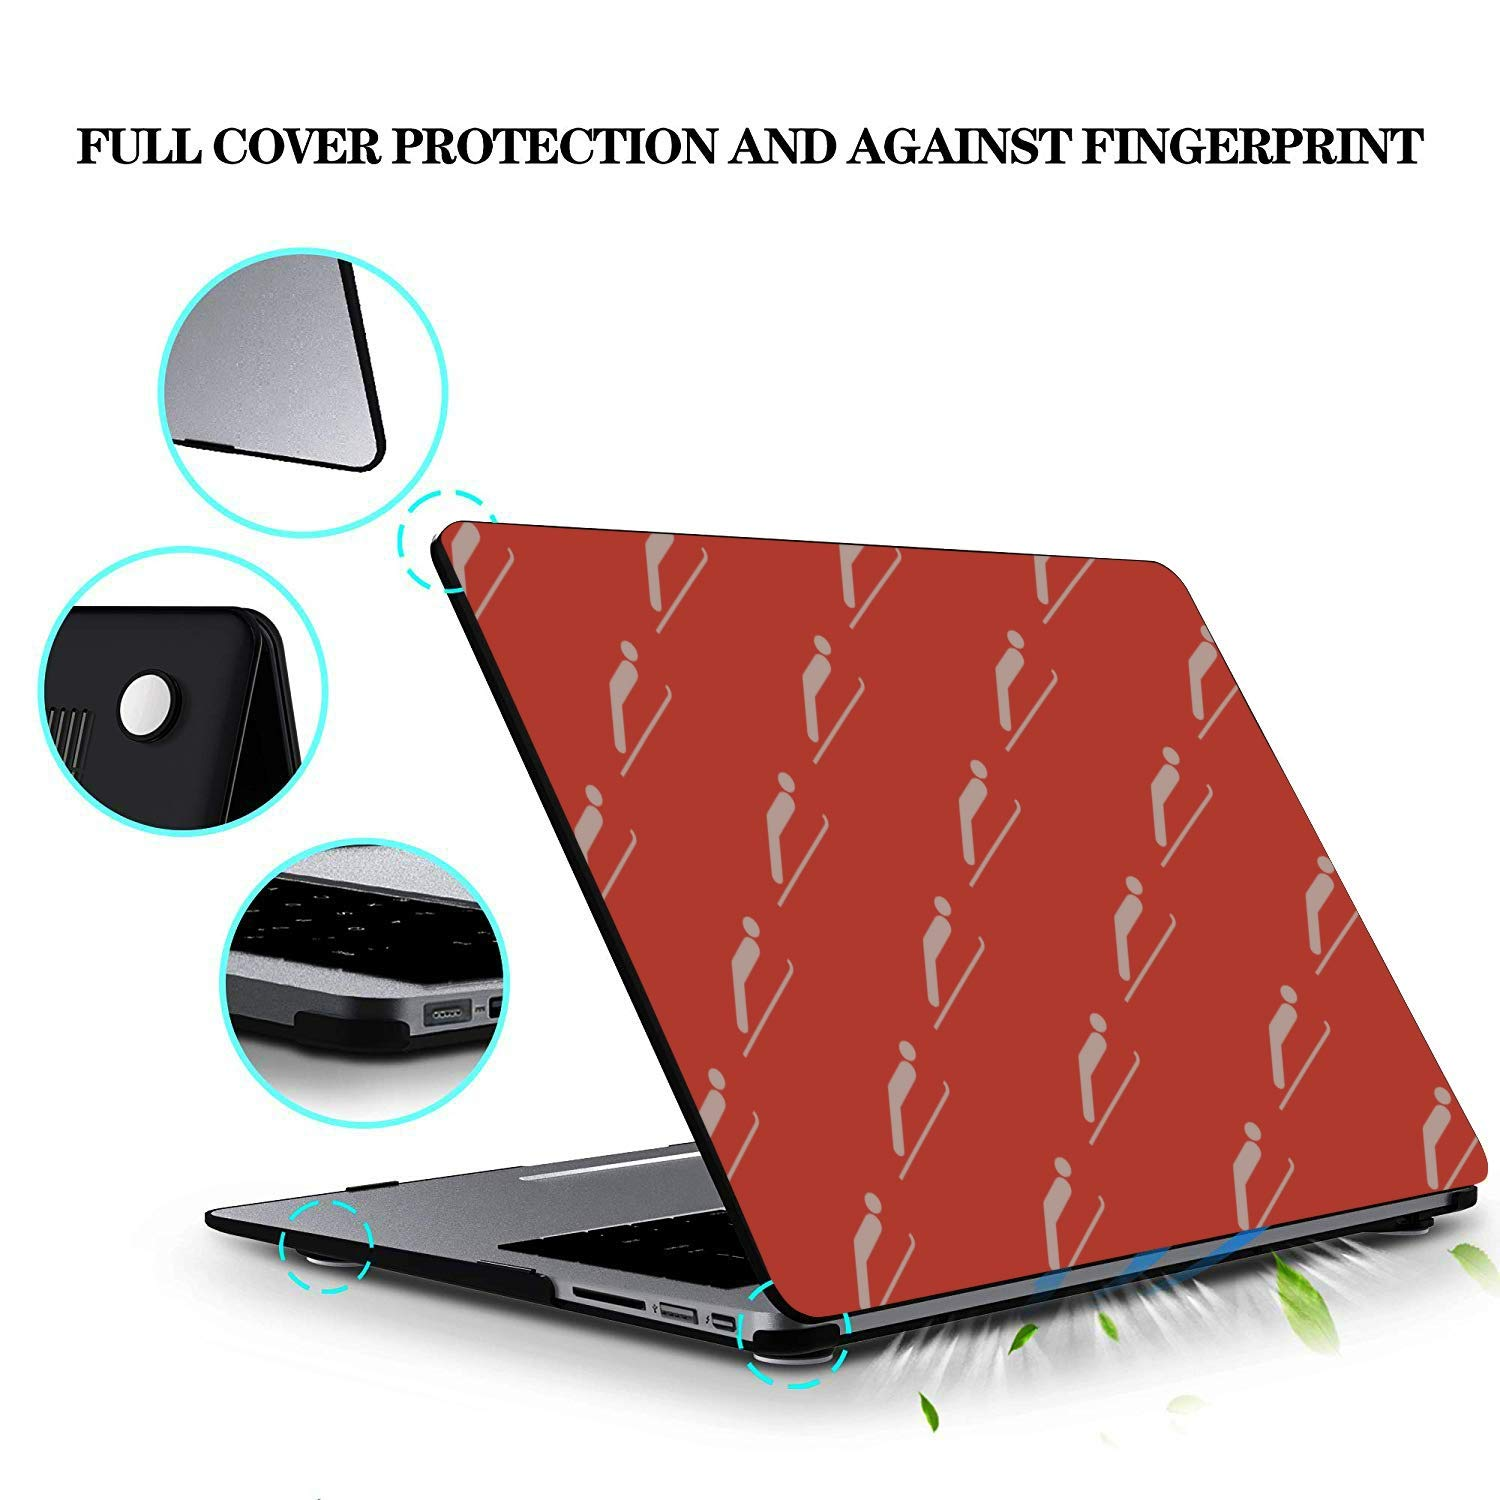 Laptop Hard Cover Skiing Extreme Sports Entertainment Plastic Hard Shell Compatible Mac Air 11 Pro 13 15 2018 MacBook Pro Case Protection for MacBook 2016-2019 Version